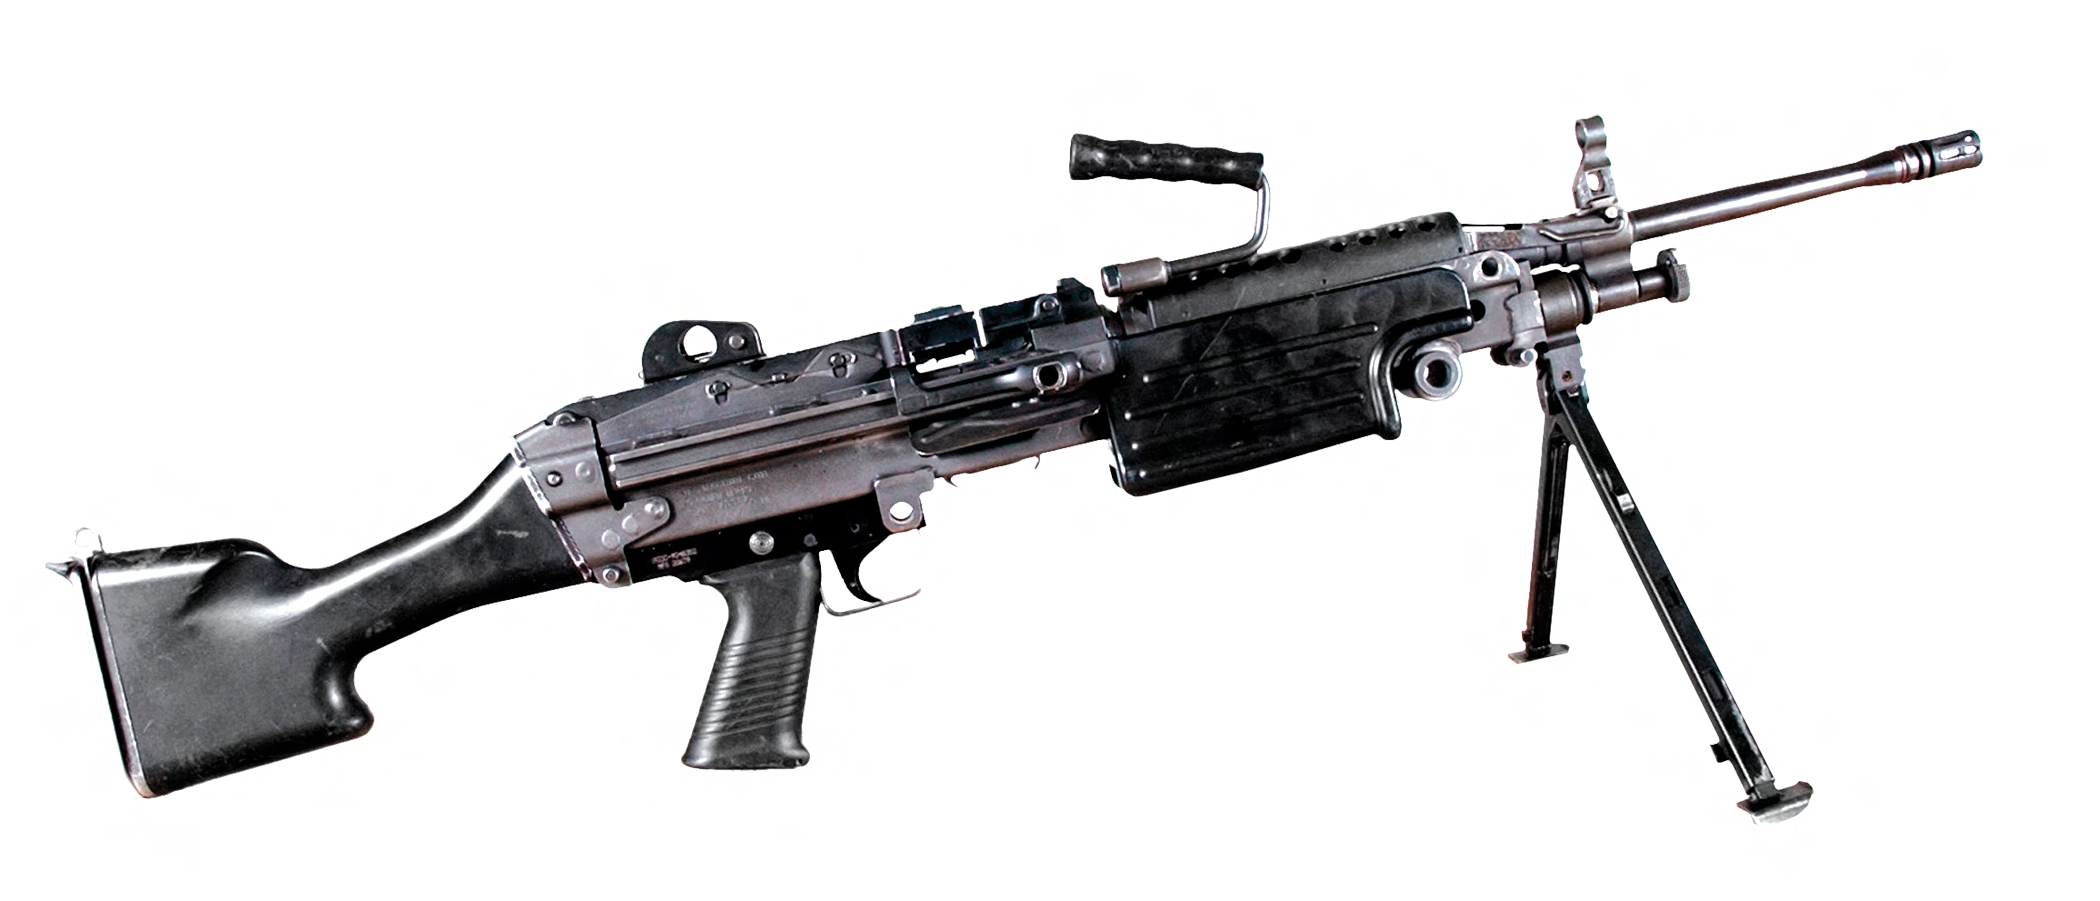 M249 light machine gun - Wikipedia